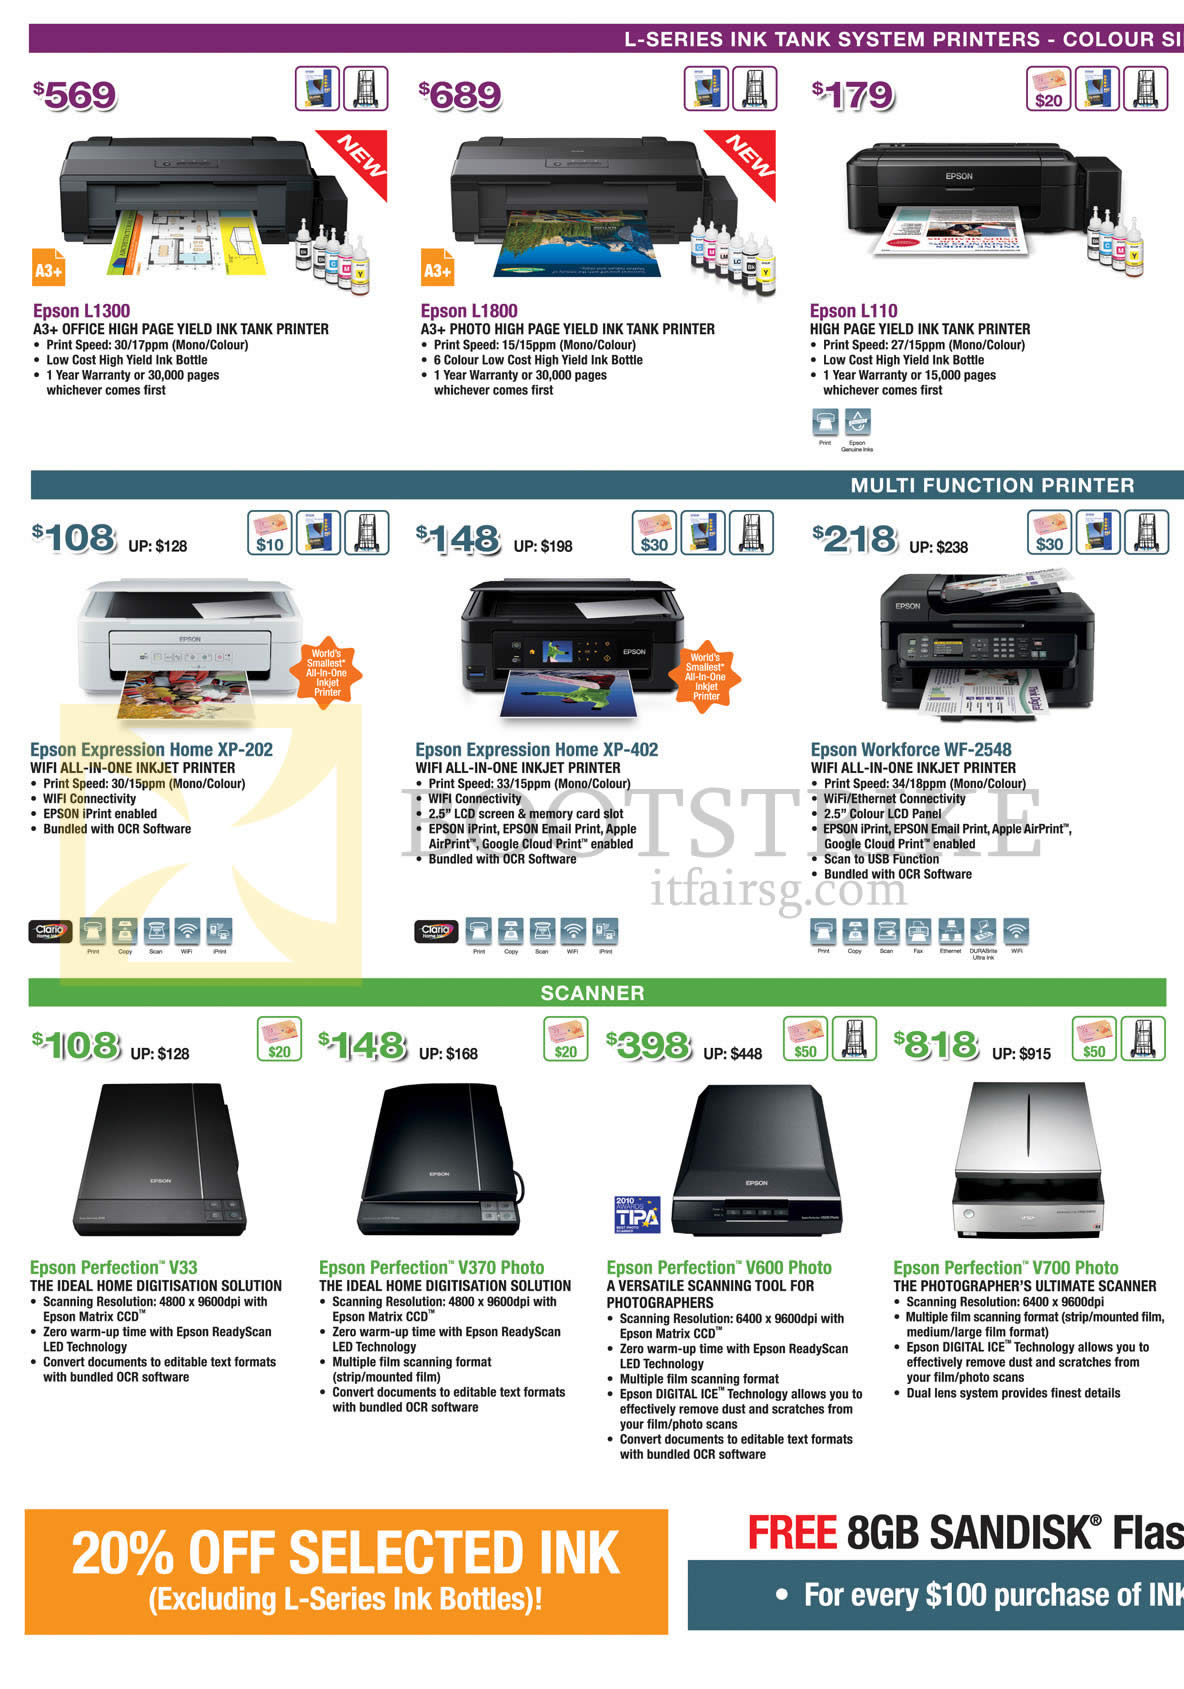 Epson Printers Inkjet Scanners L1300 L1800 L110 Expression Home Printer Pc Show 2014 Price List Image Brochure Of